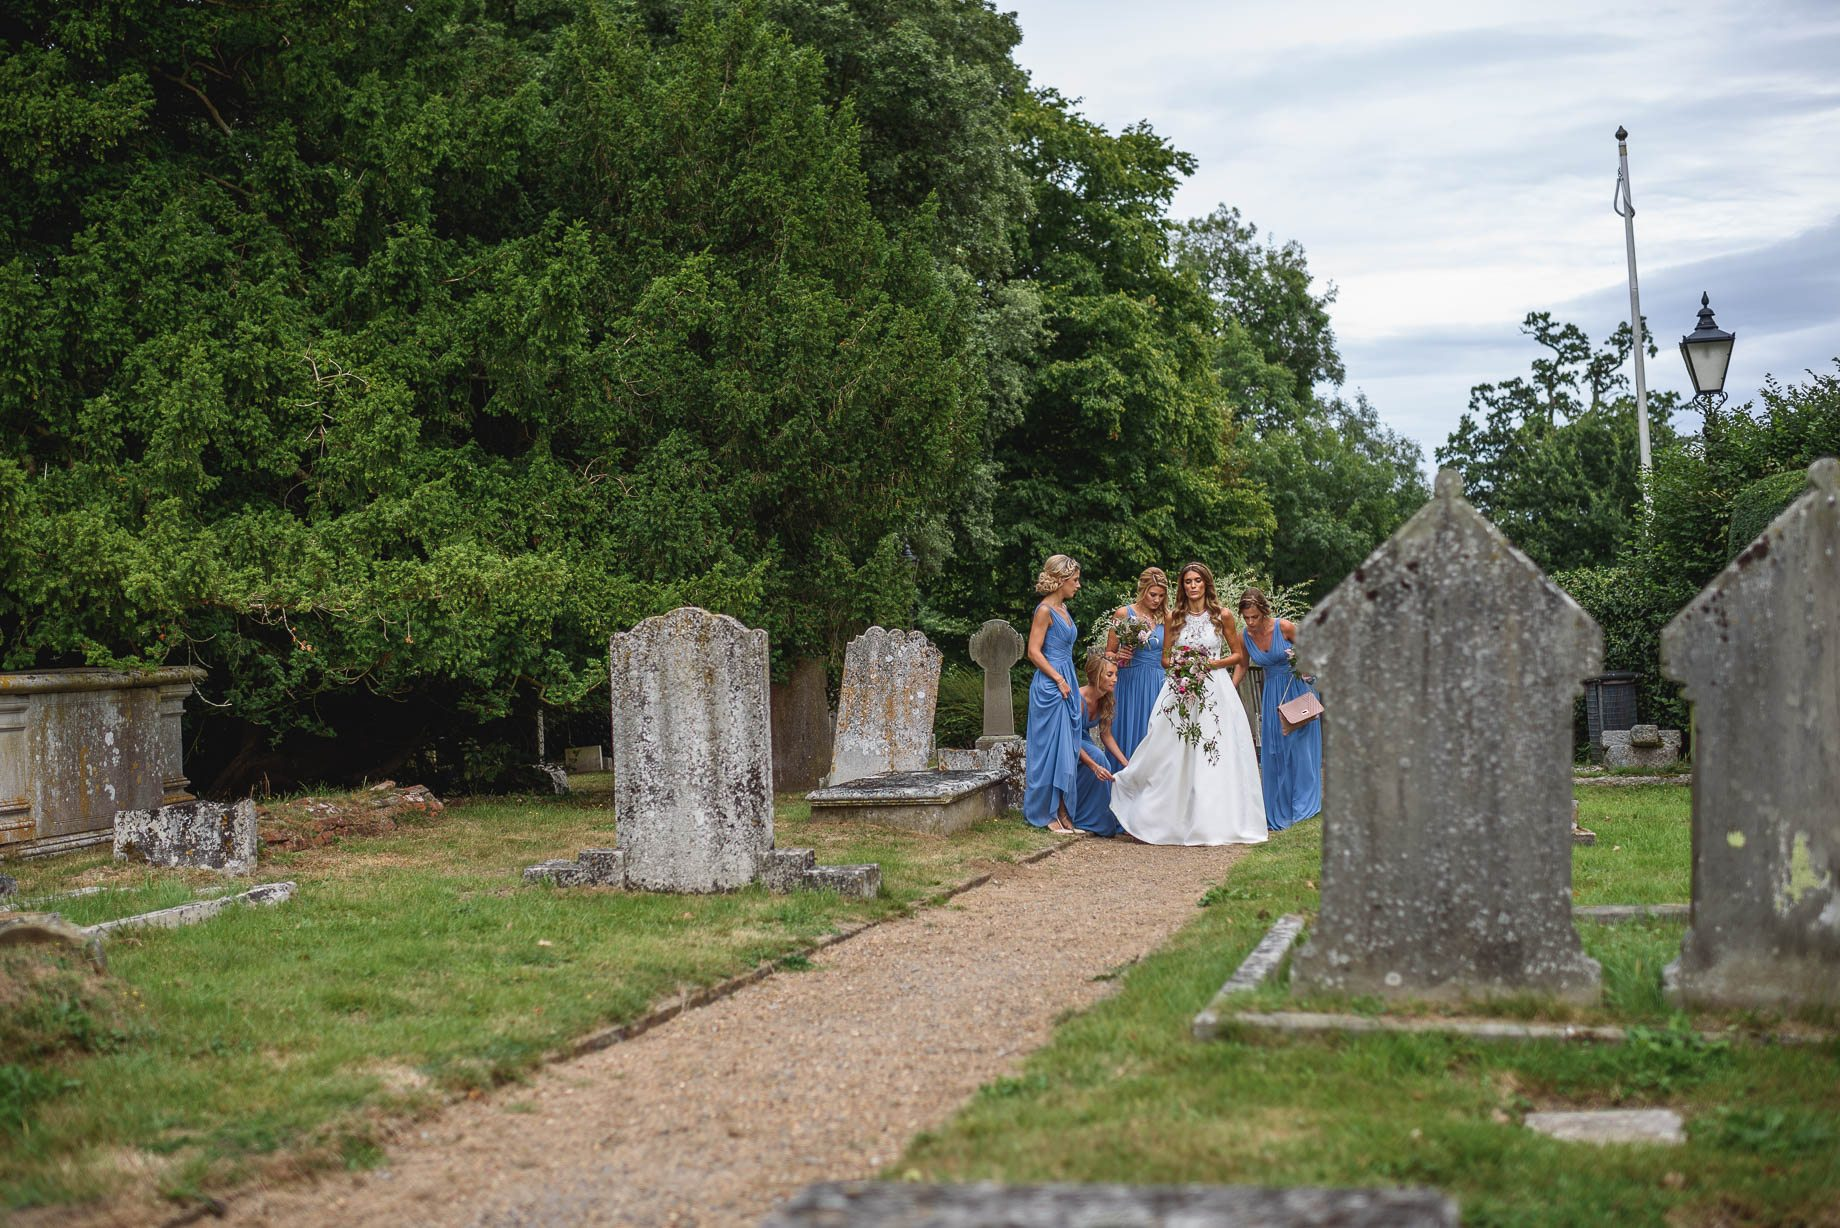 surrey-wedding-photography-guy-collier-photography-claire-and-tom-69-of-227